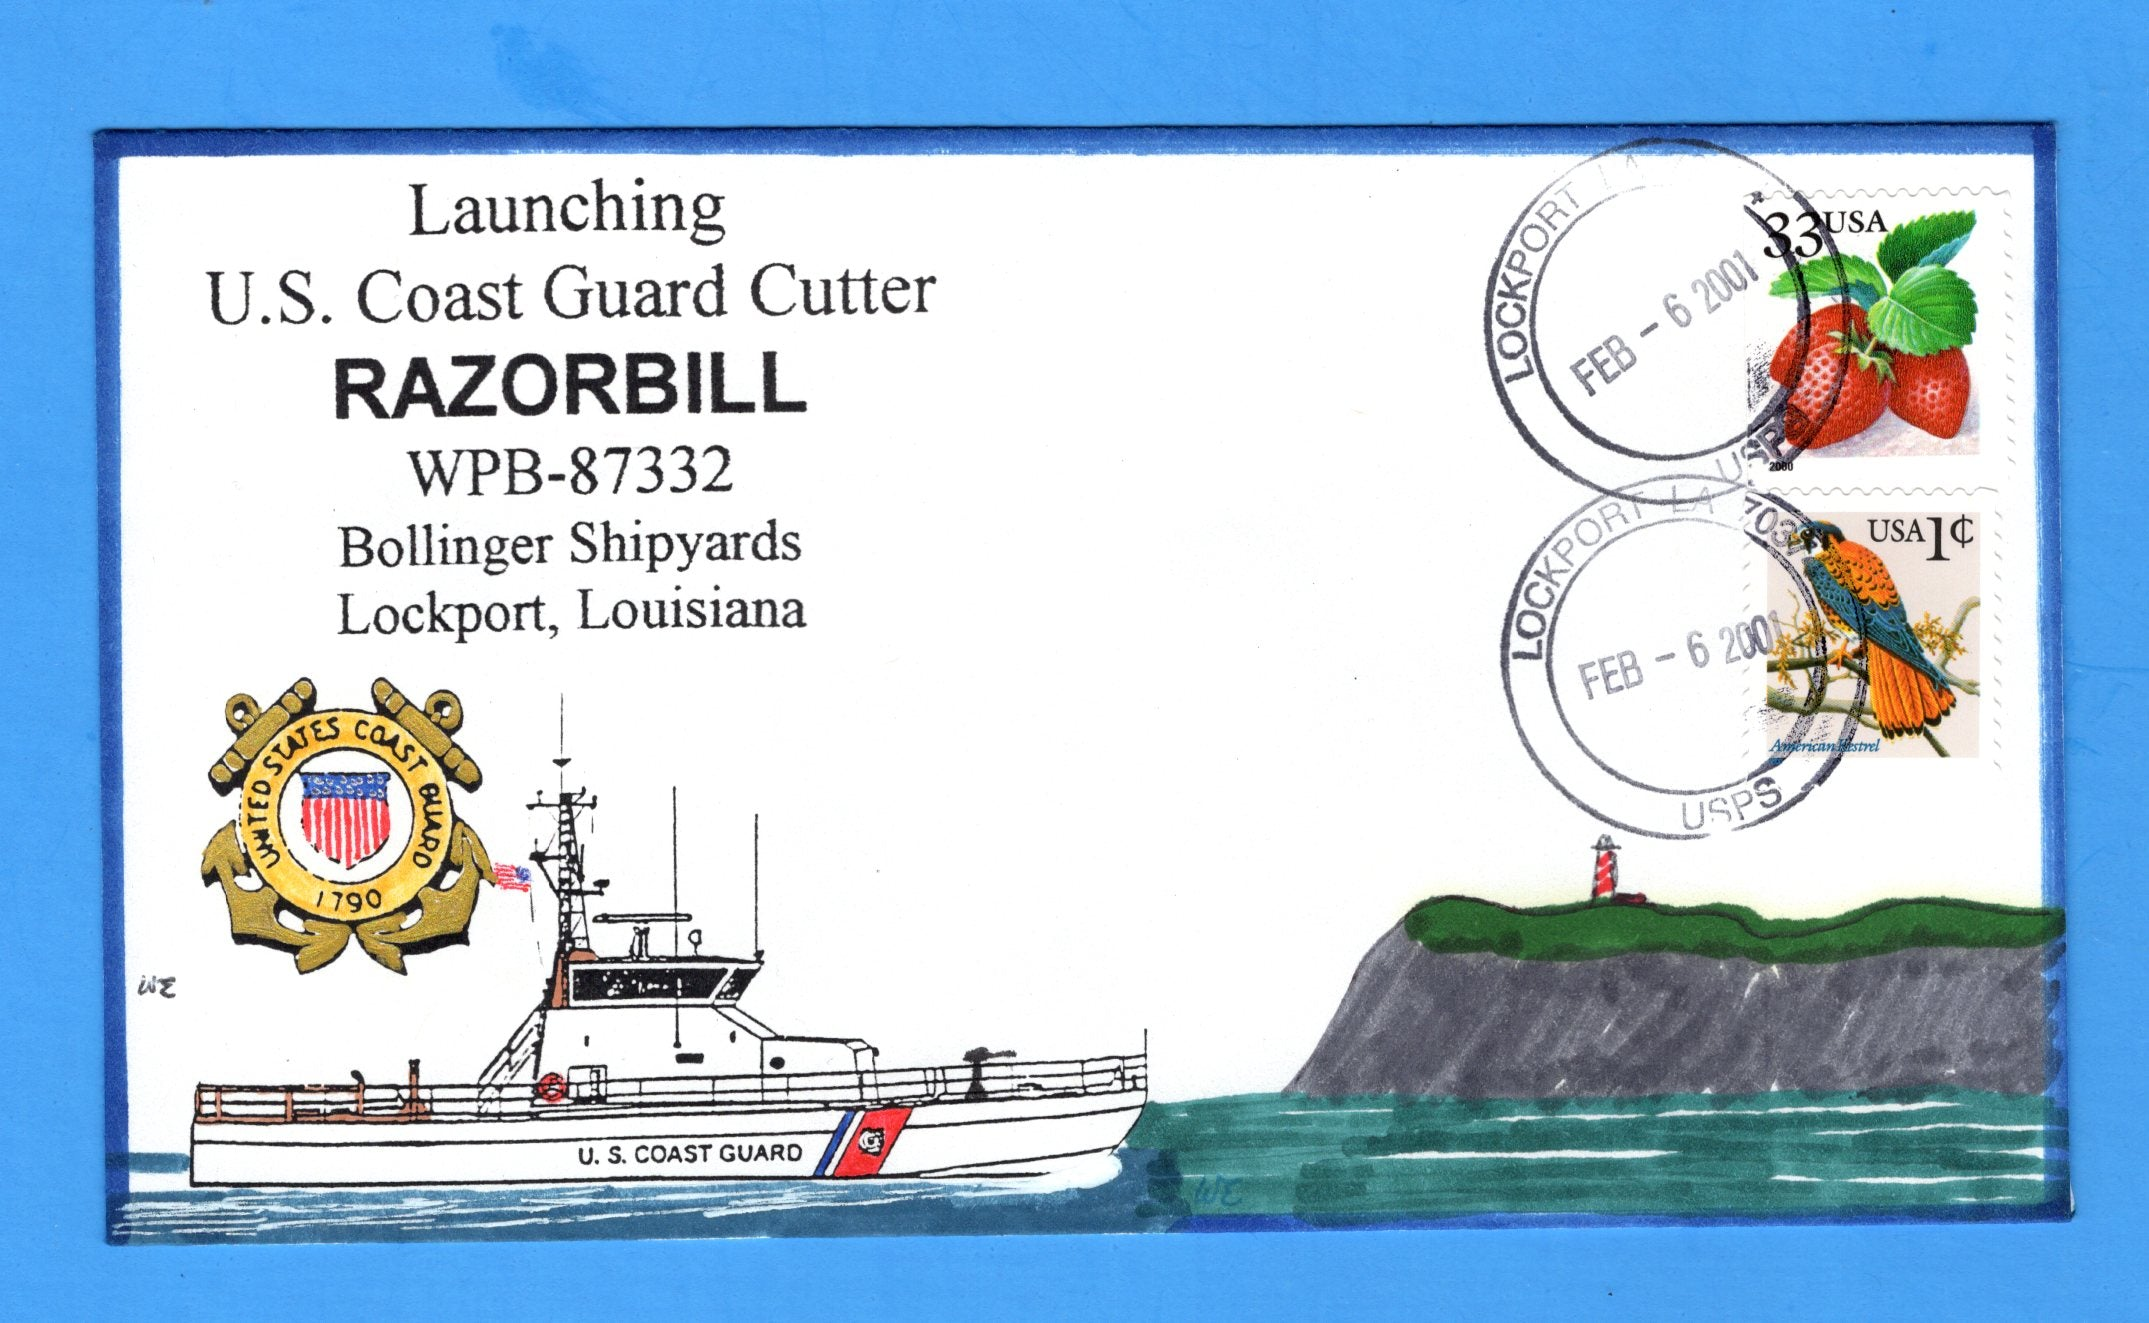 USCGC Razorbill WPB-87332 Launching February 6, 2001- Hand Drawn and Colored Cachet by Bill Everett